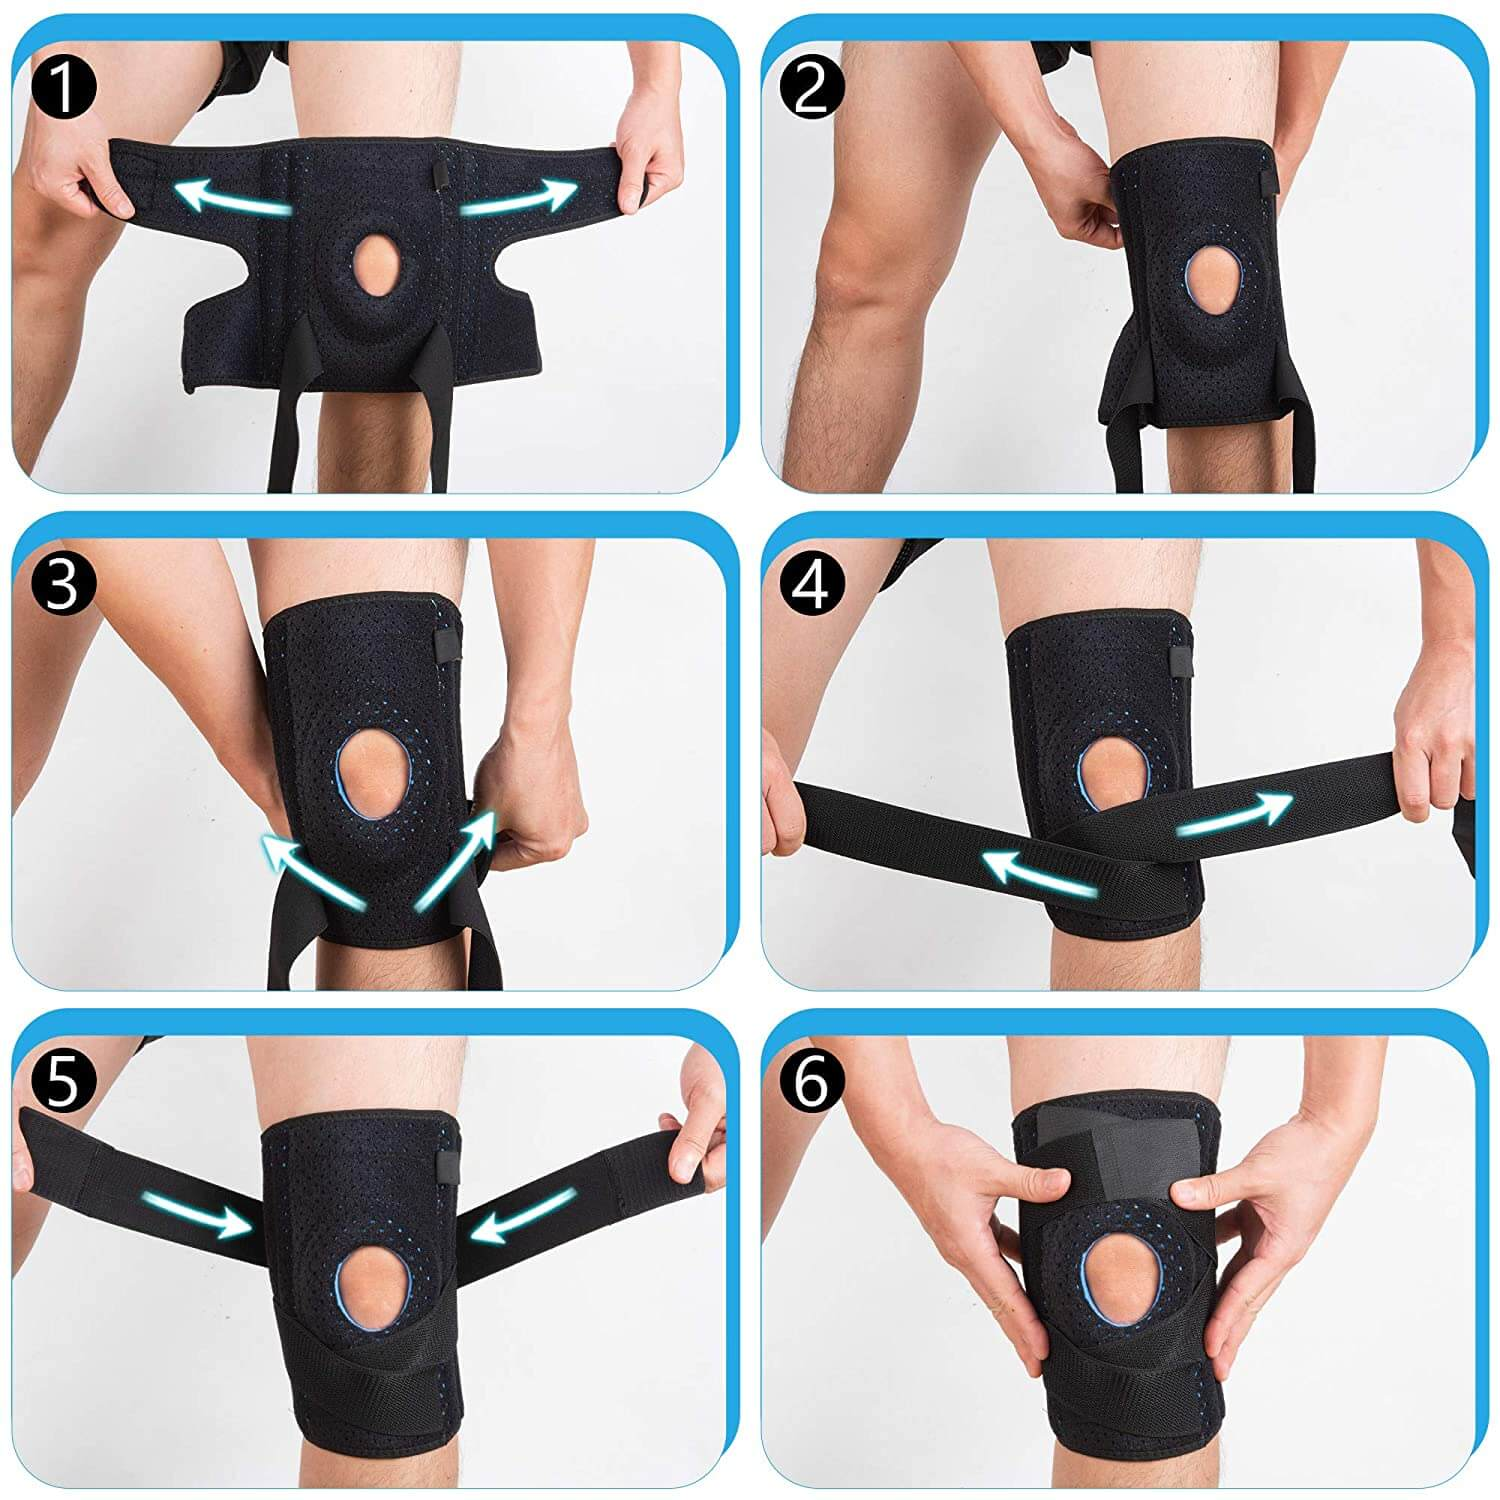 How to wear the Knee Brace Support